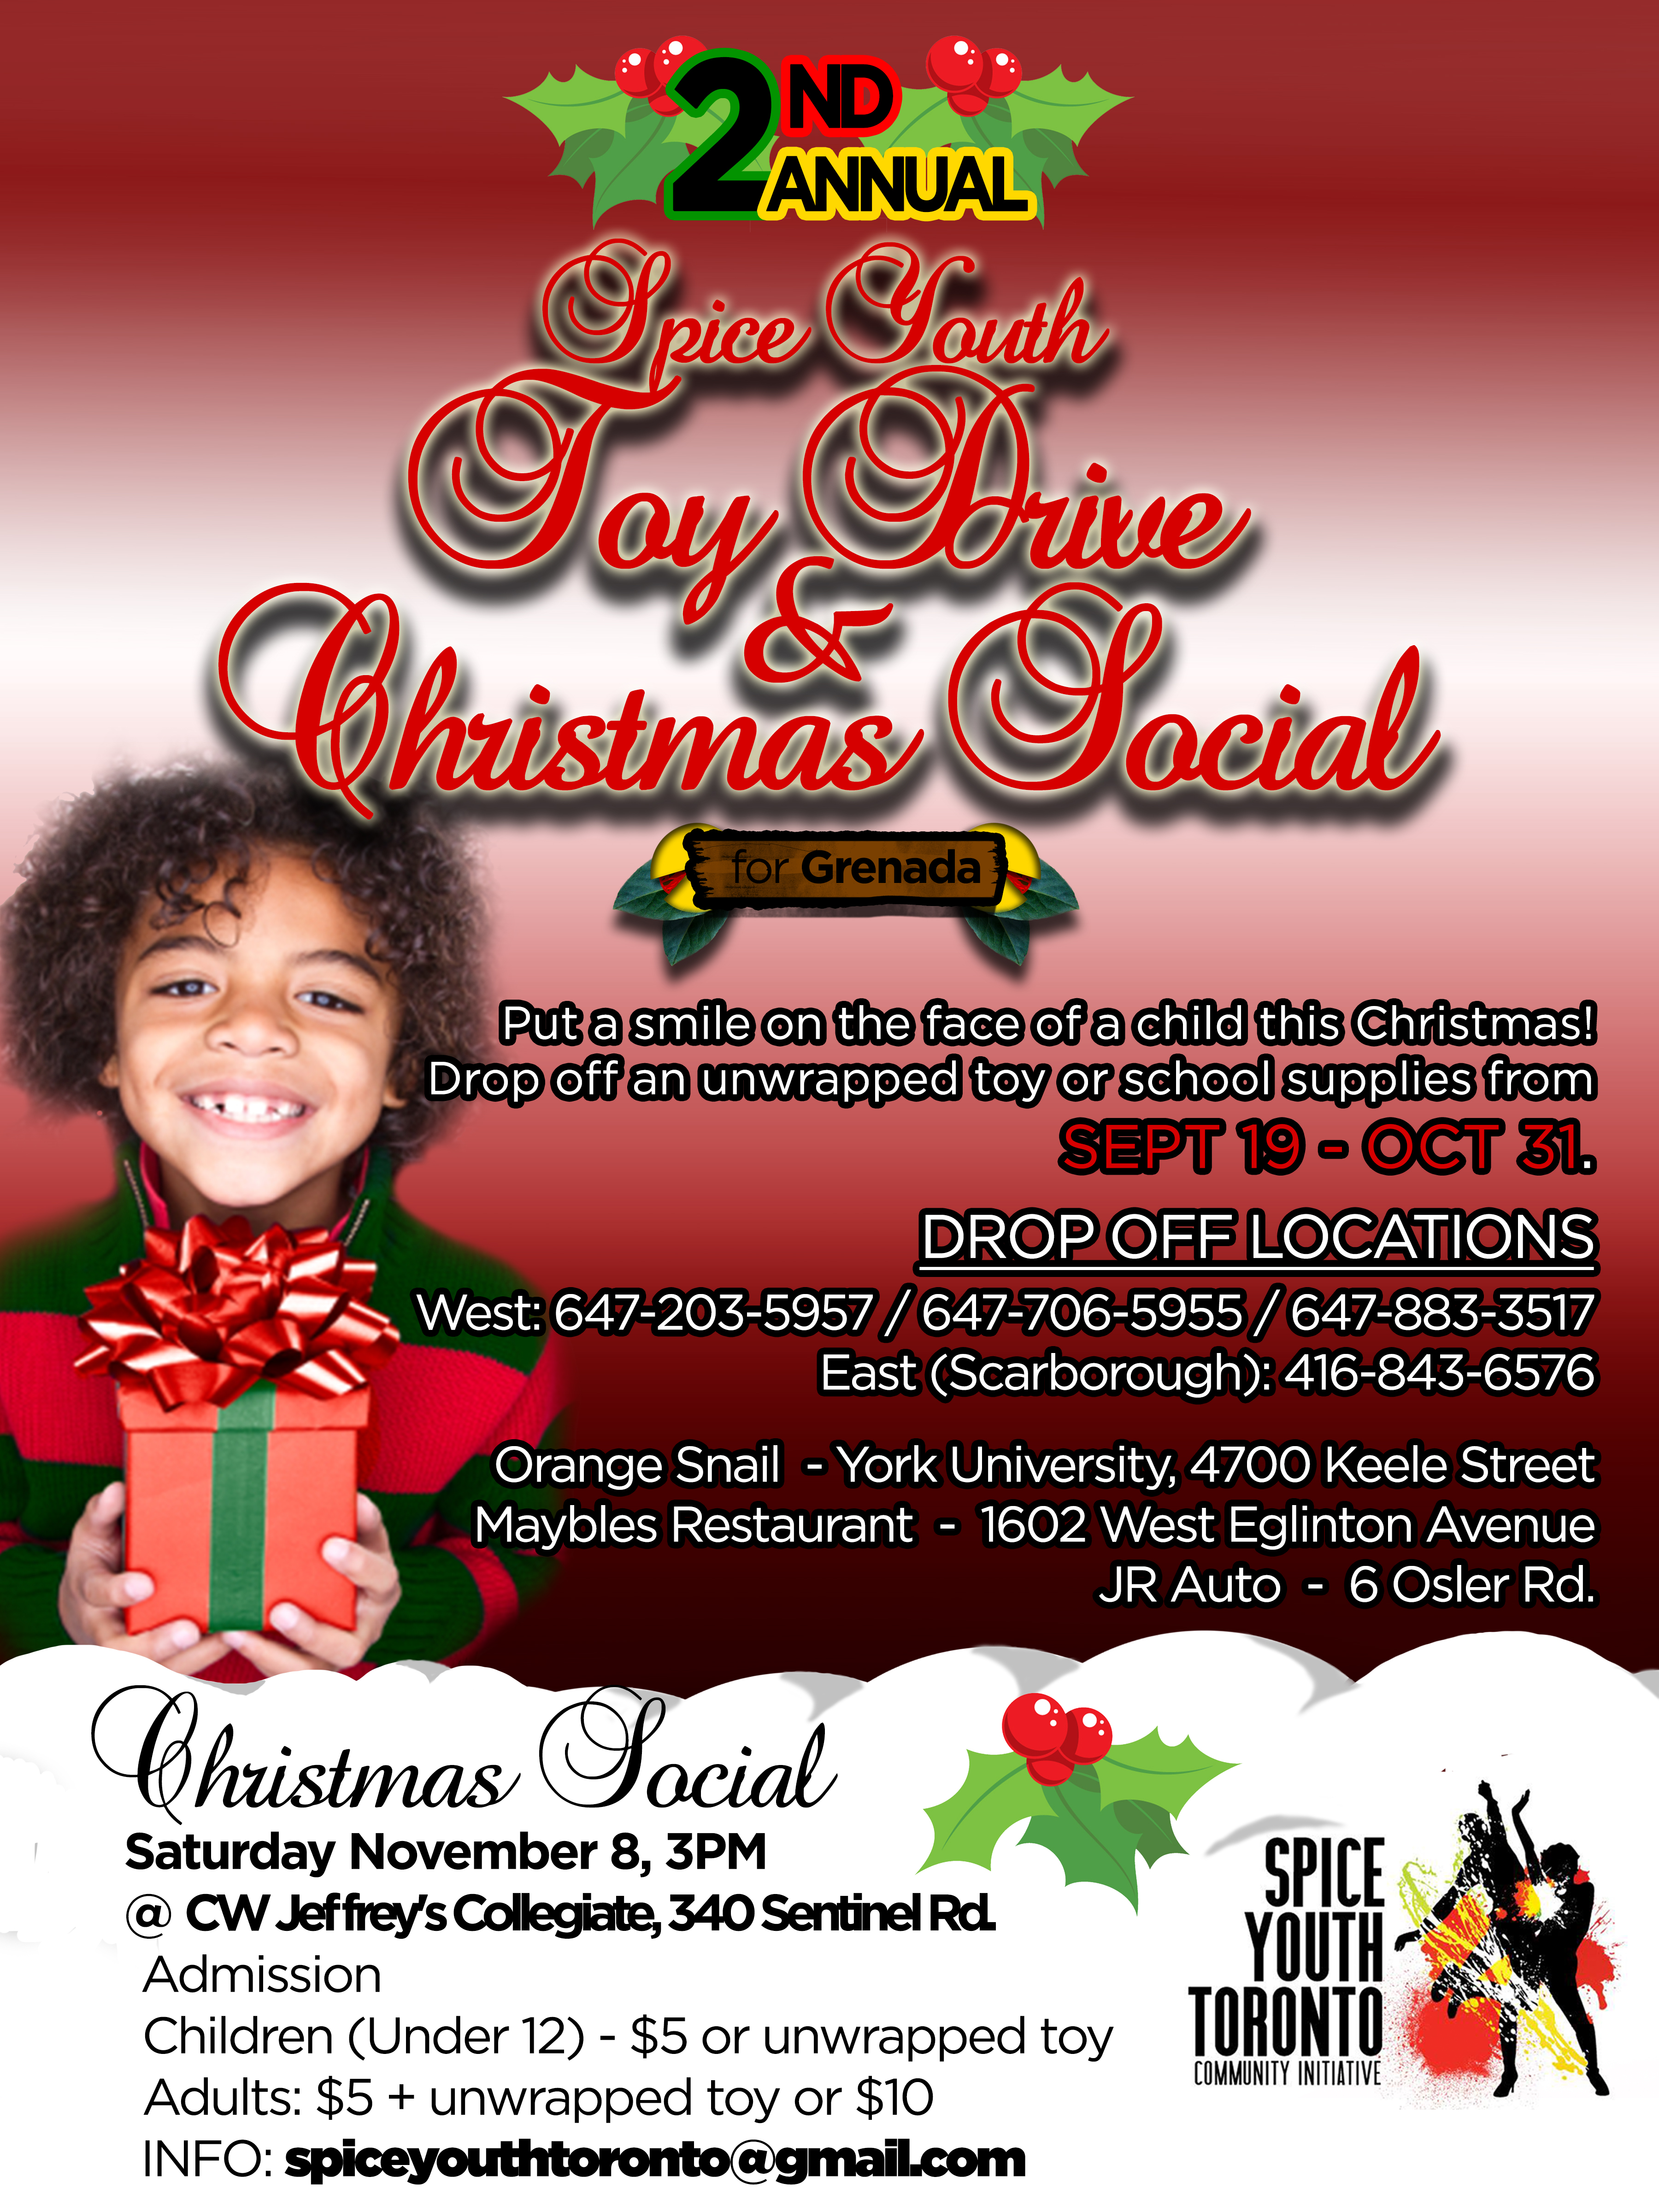 spice youth toy book drive for spice youth toronto syt toy book drive flyer w social details